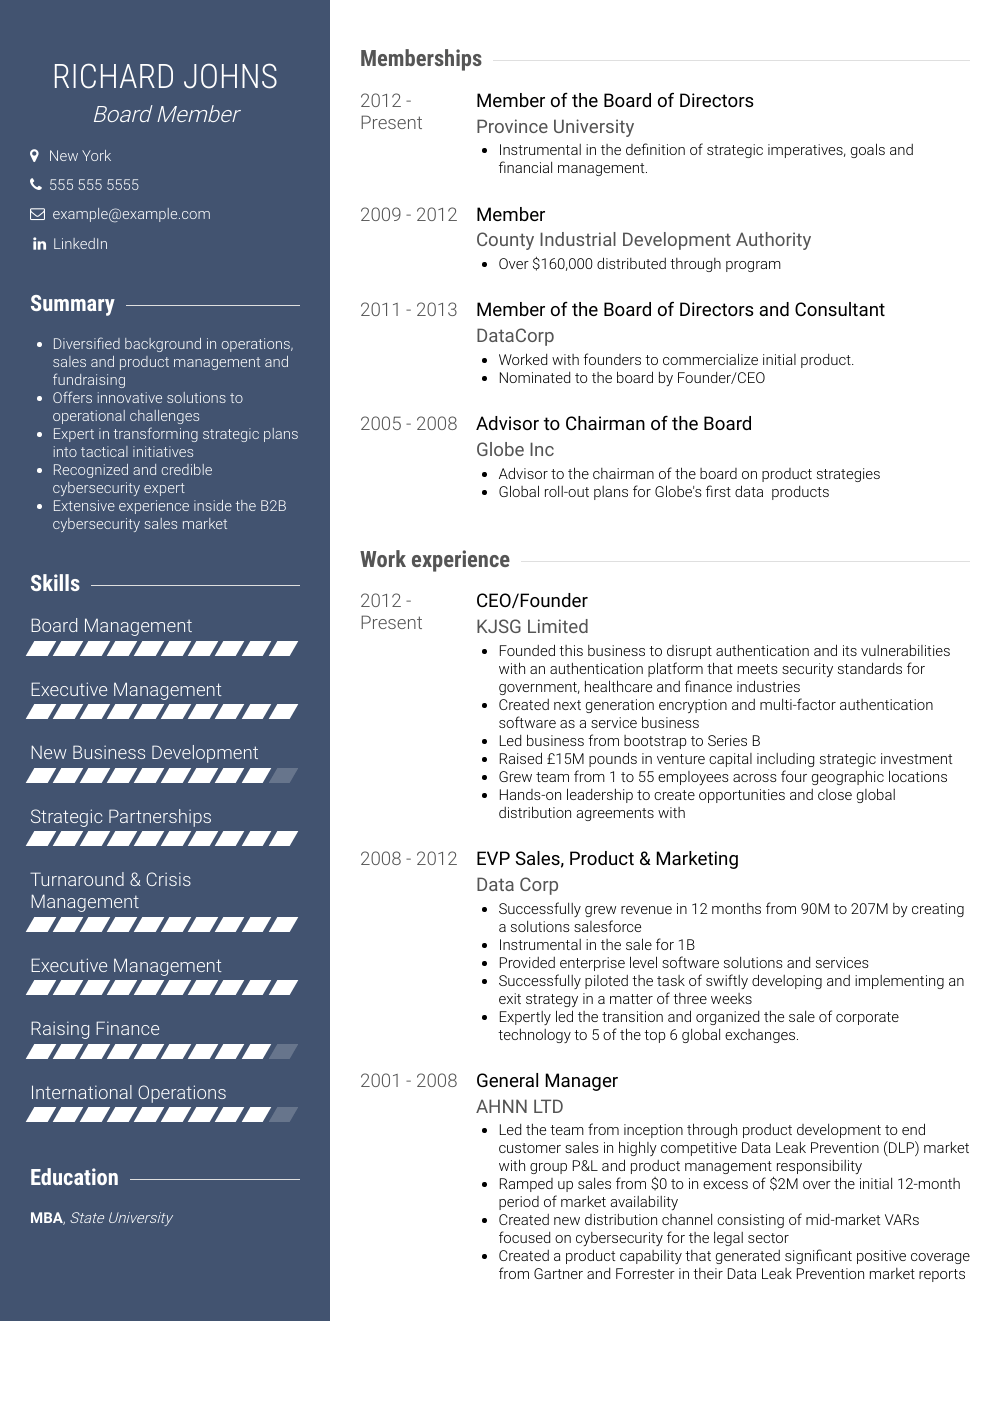 resume template doc free Professional in 2020 Resume